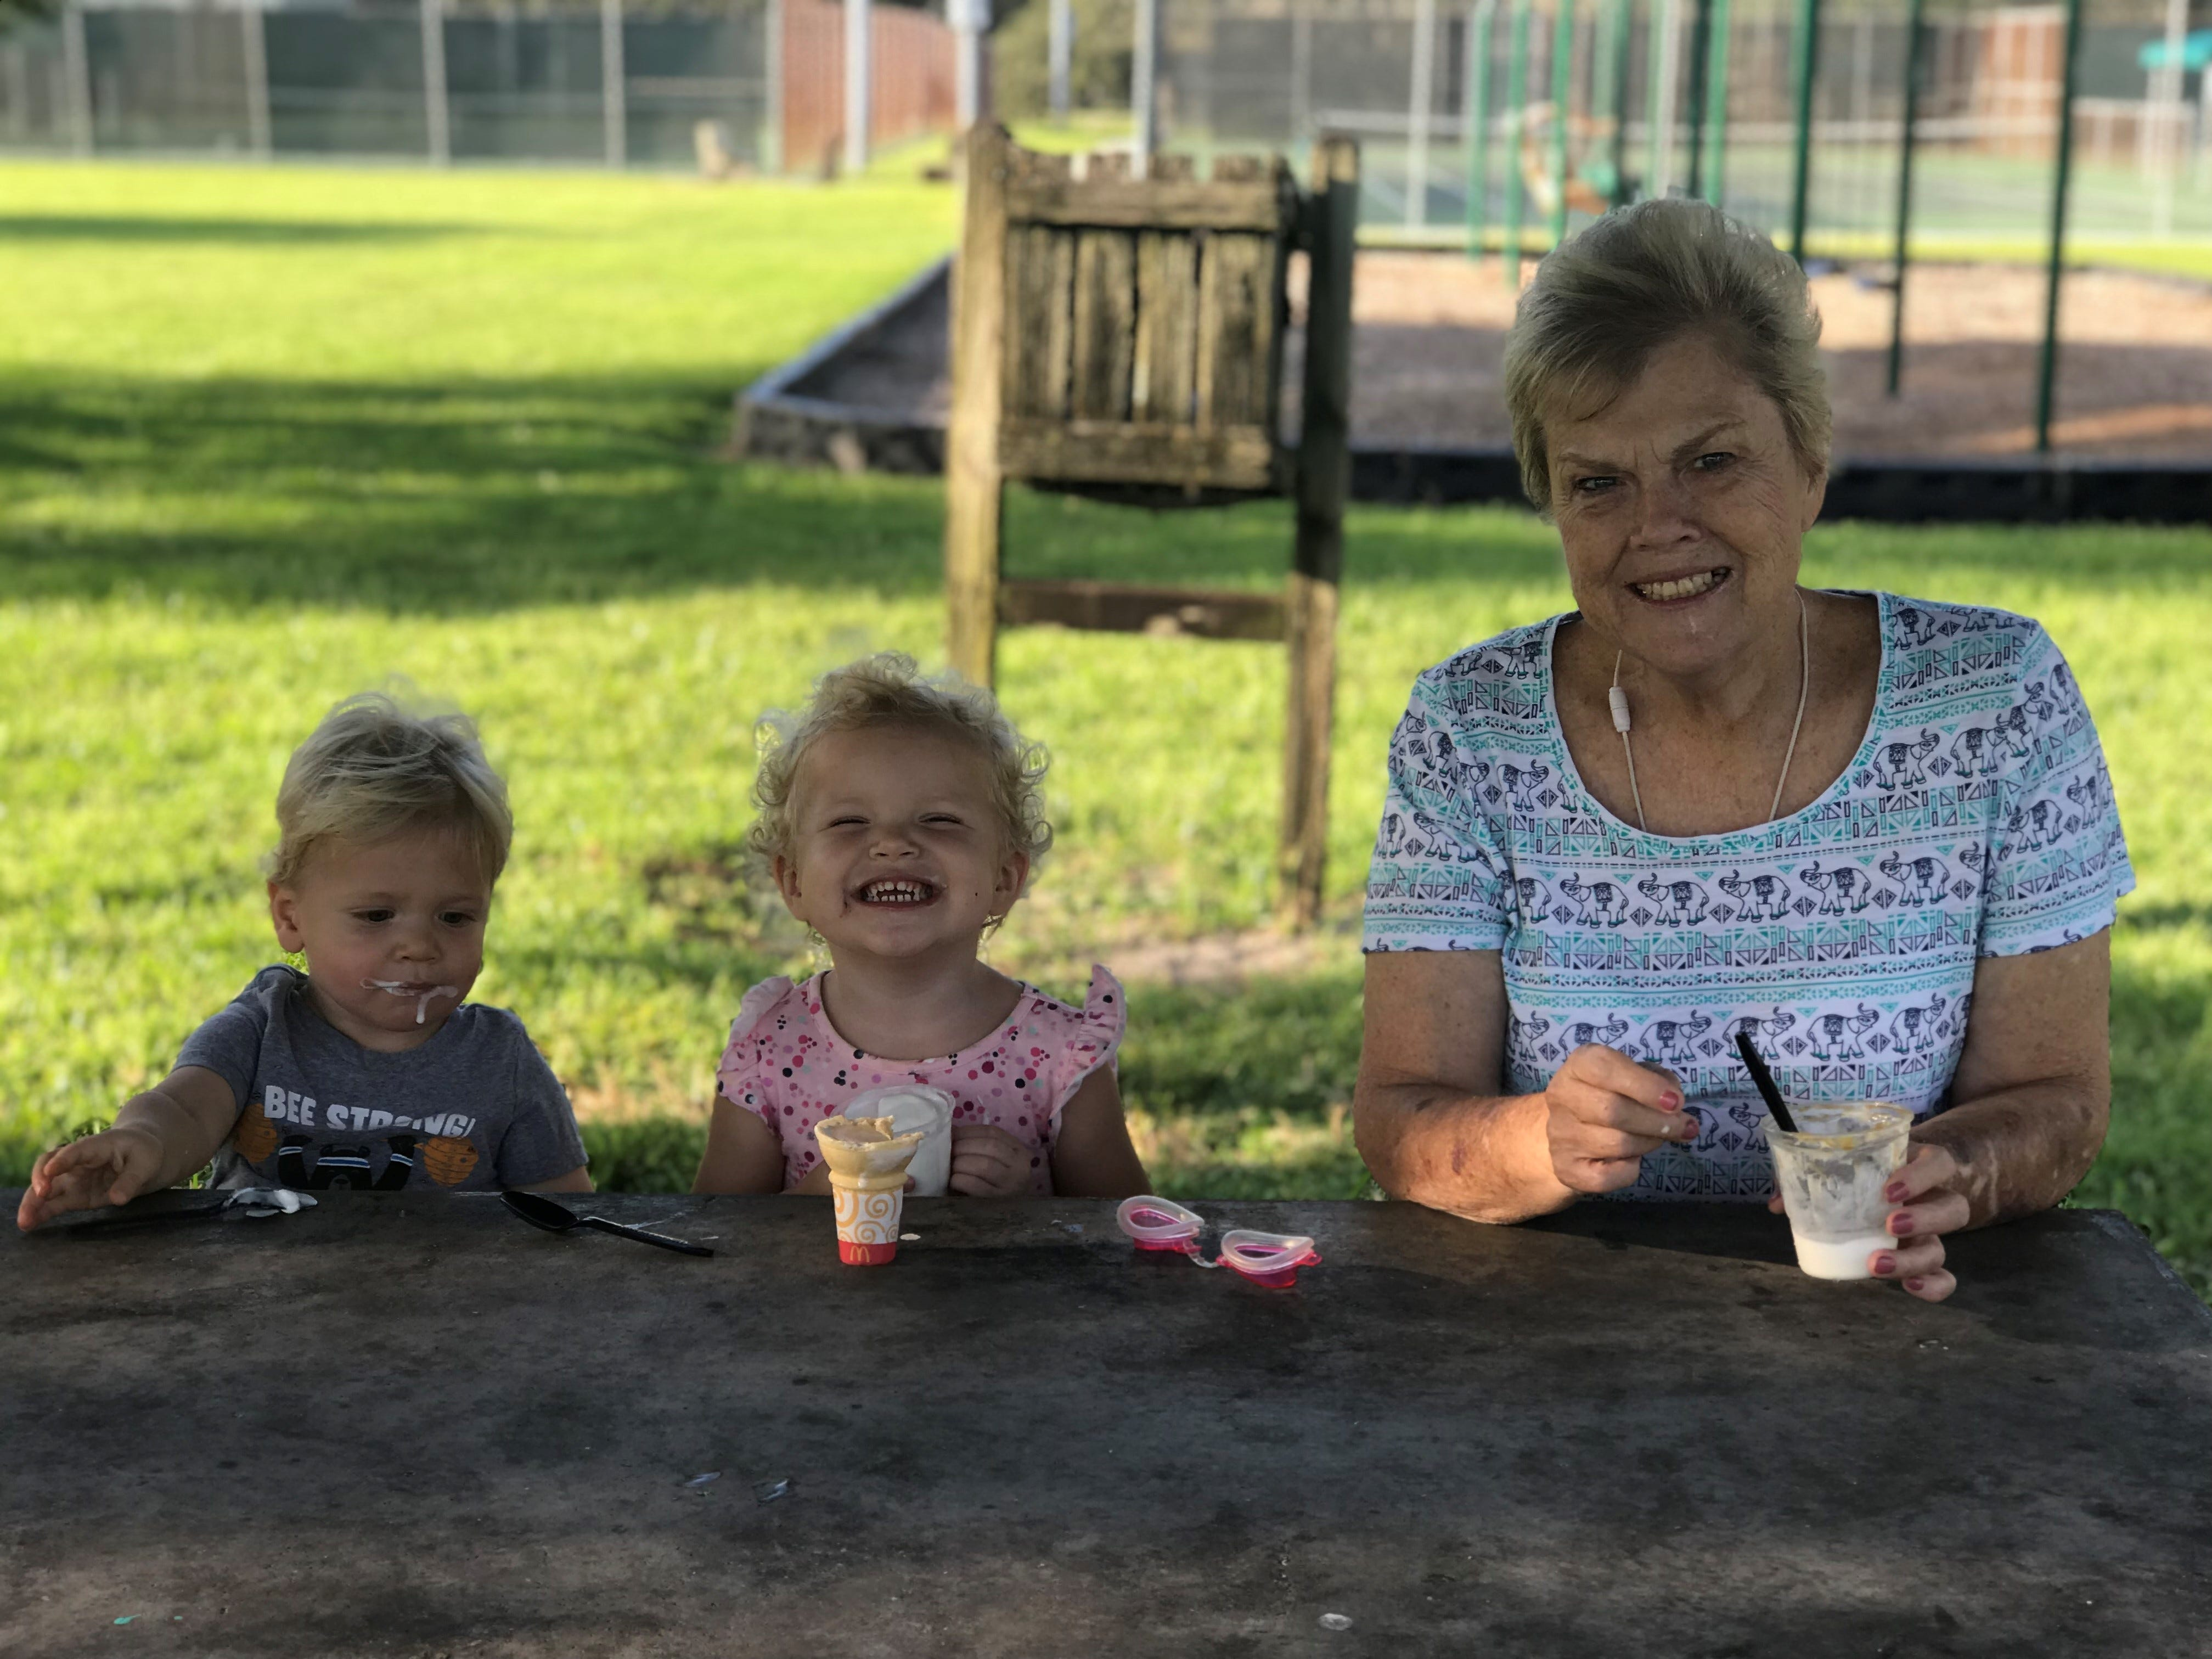 Susan Roberson, 69, died Sept. 28 in a crash on Oslo Road in Indian River County. She had four children and nine grandchildren.